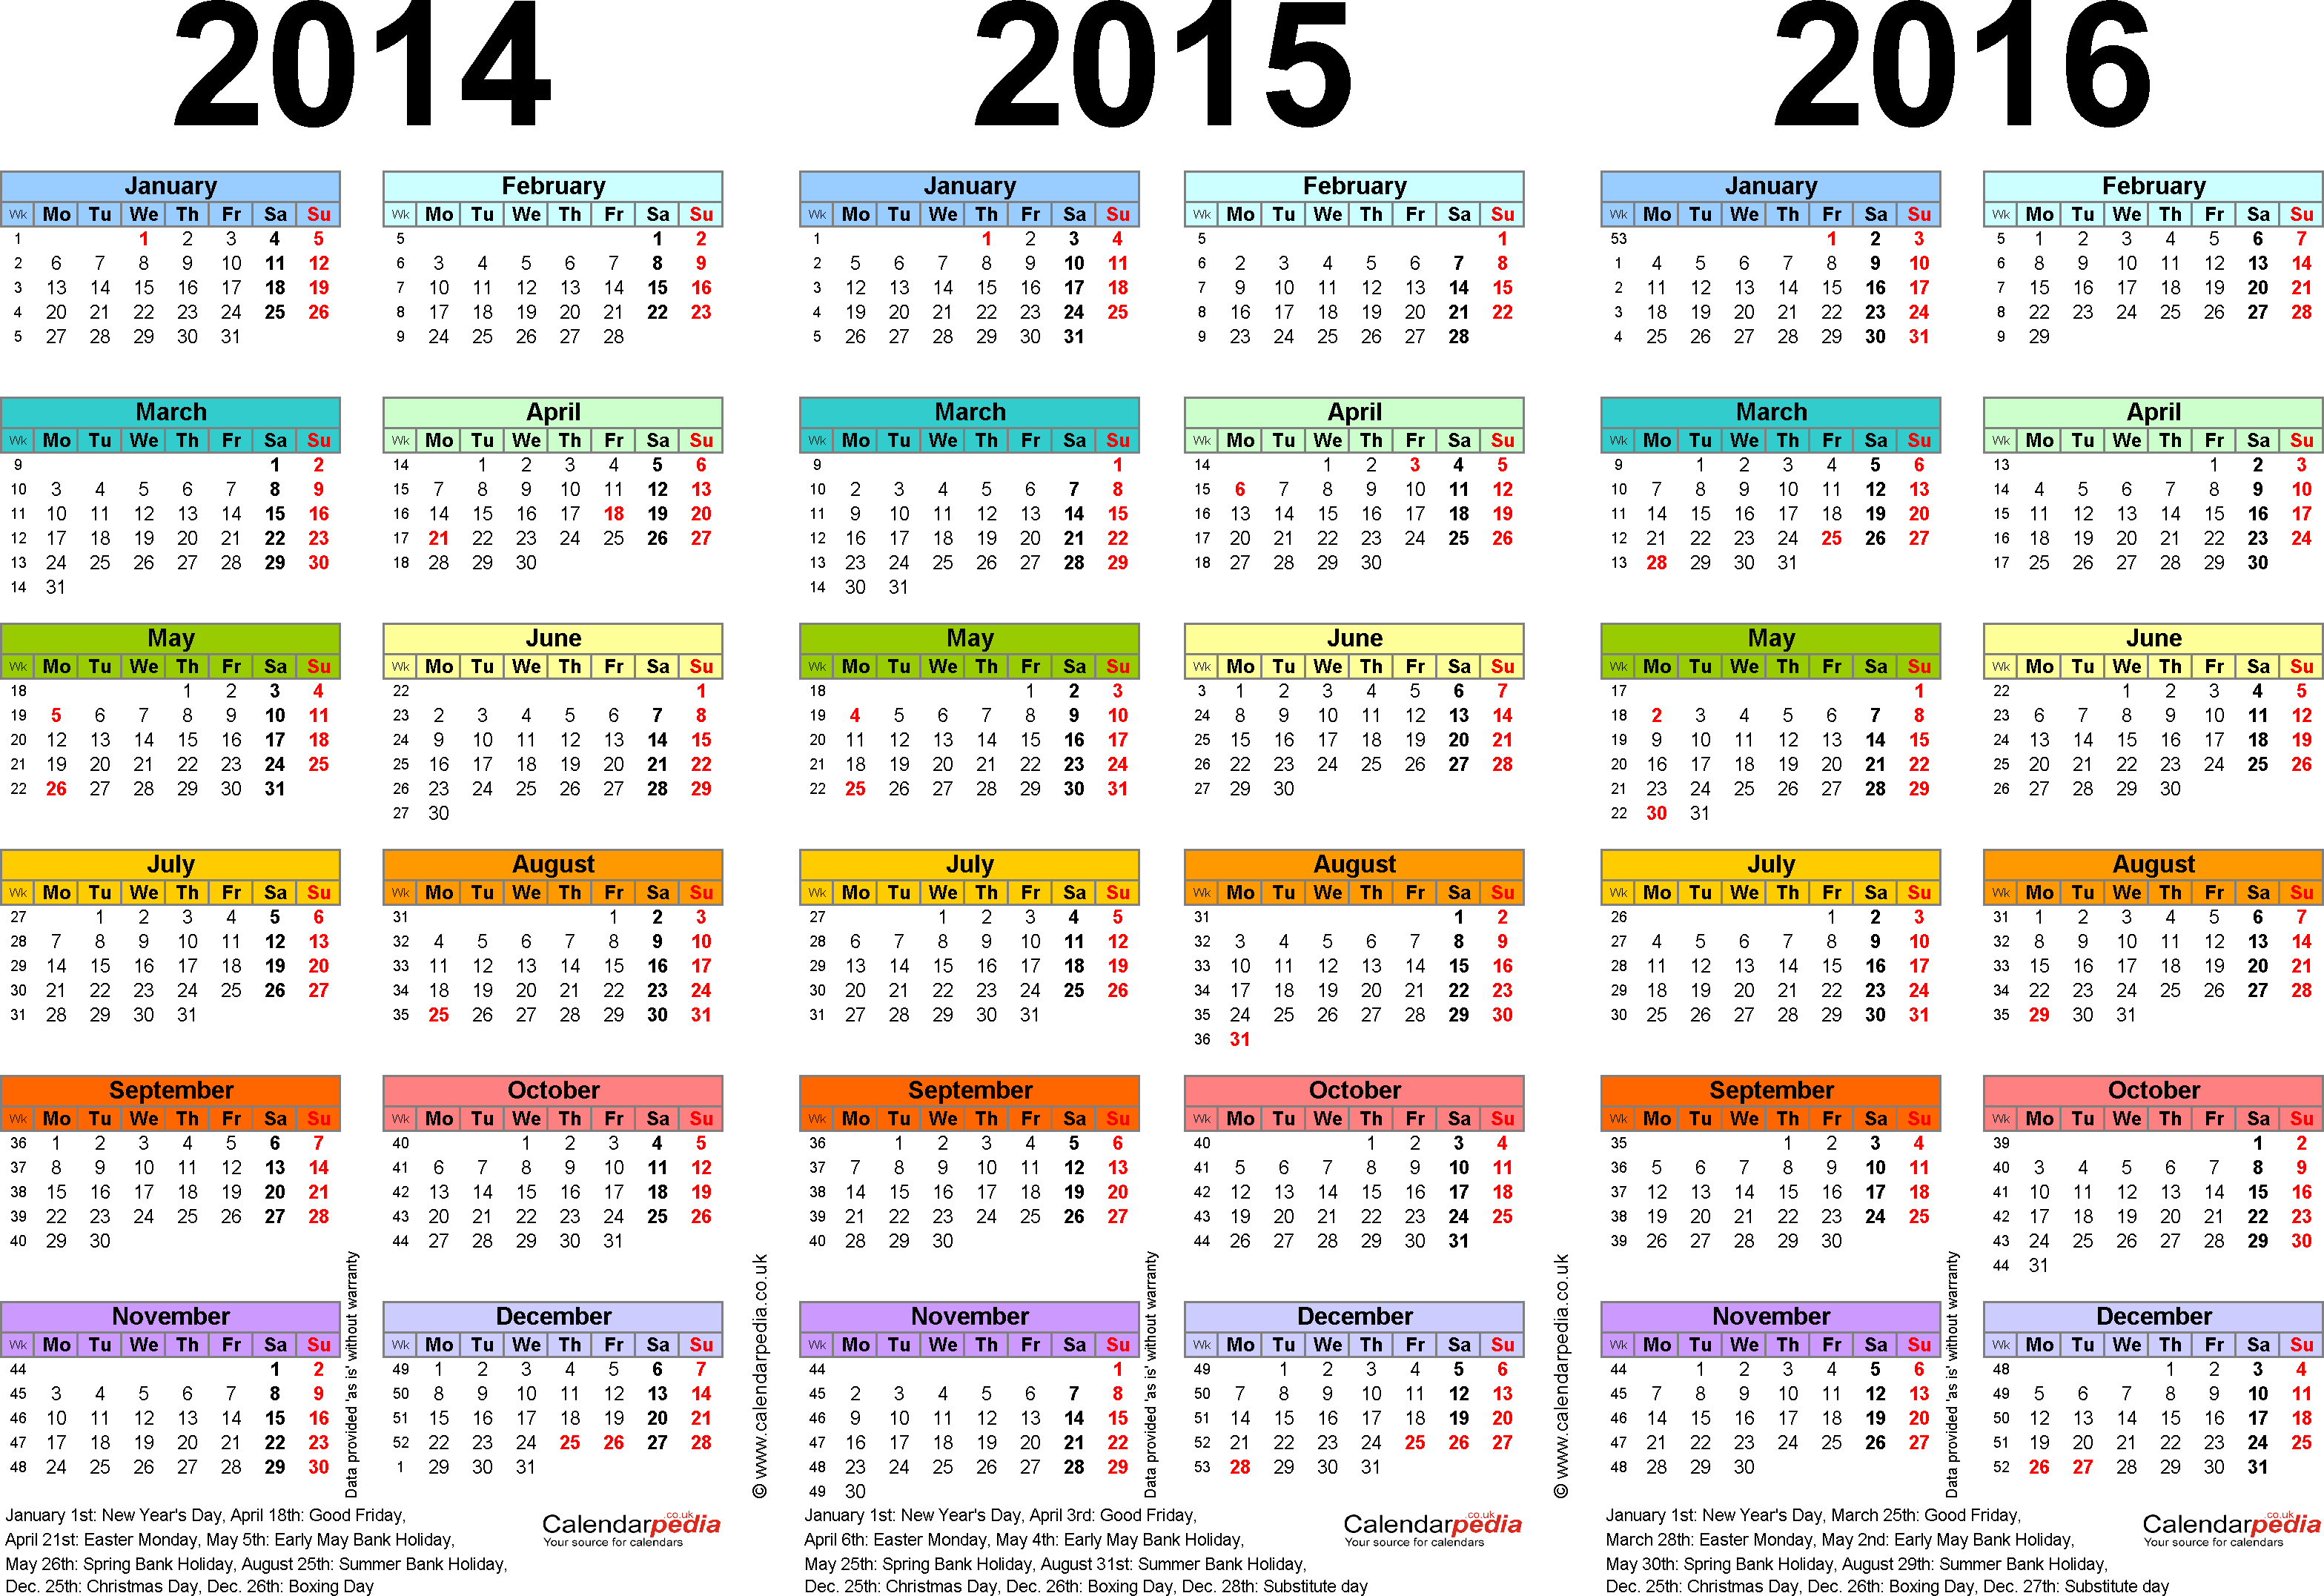 Download Template 1: Word template for three year calendar 2014-2016 in colour (landscape orientation, 1 page, A4)